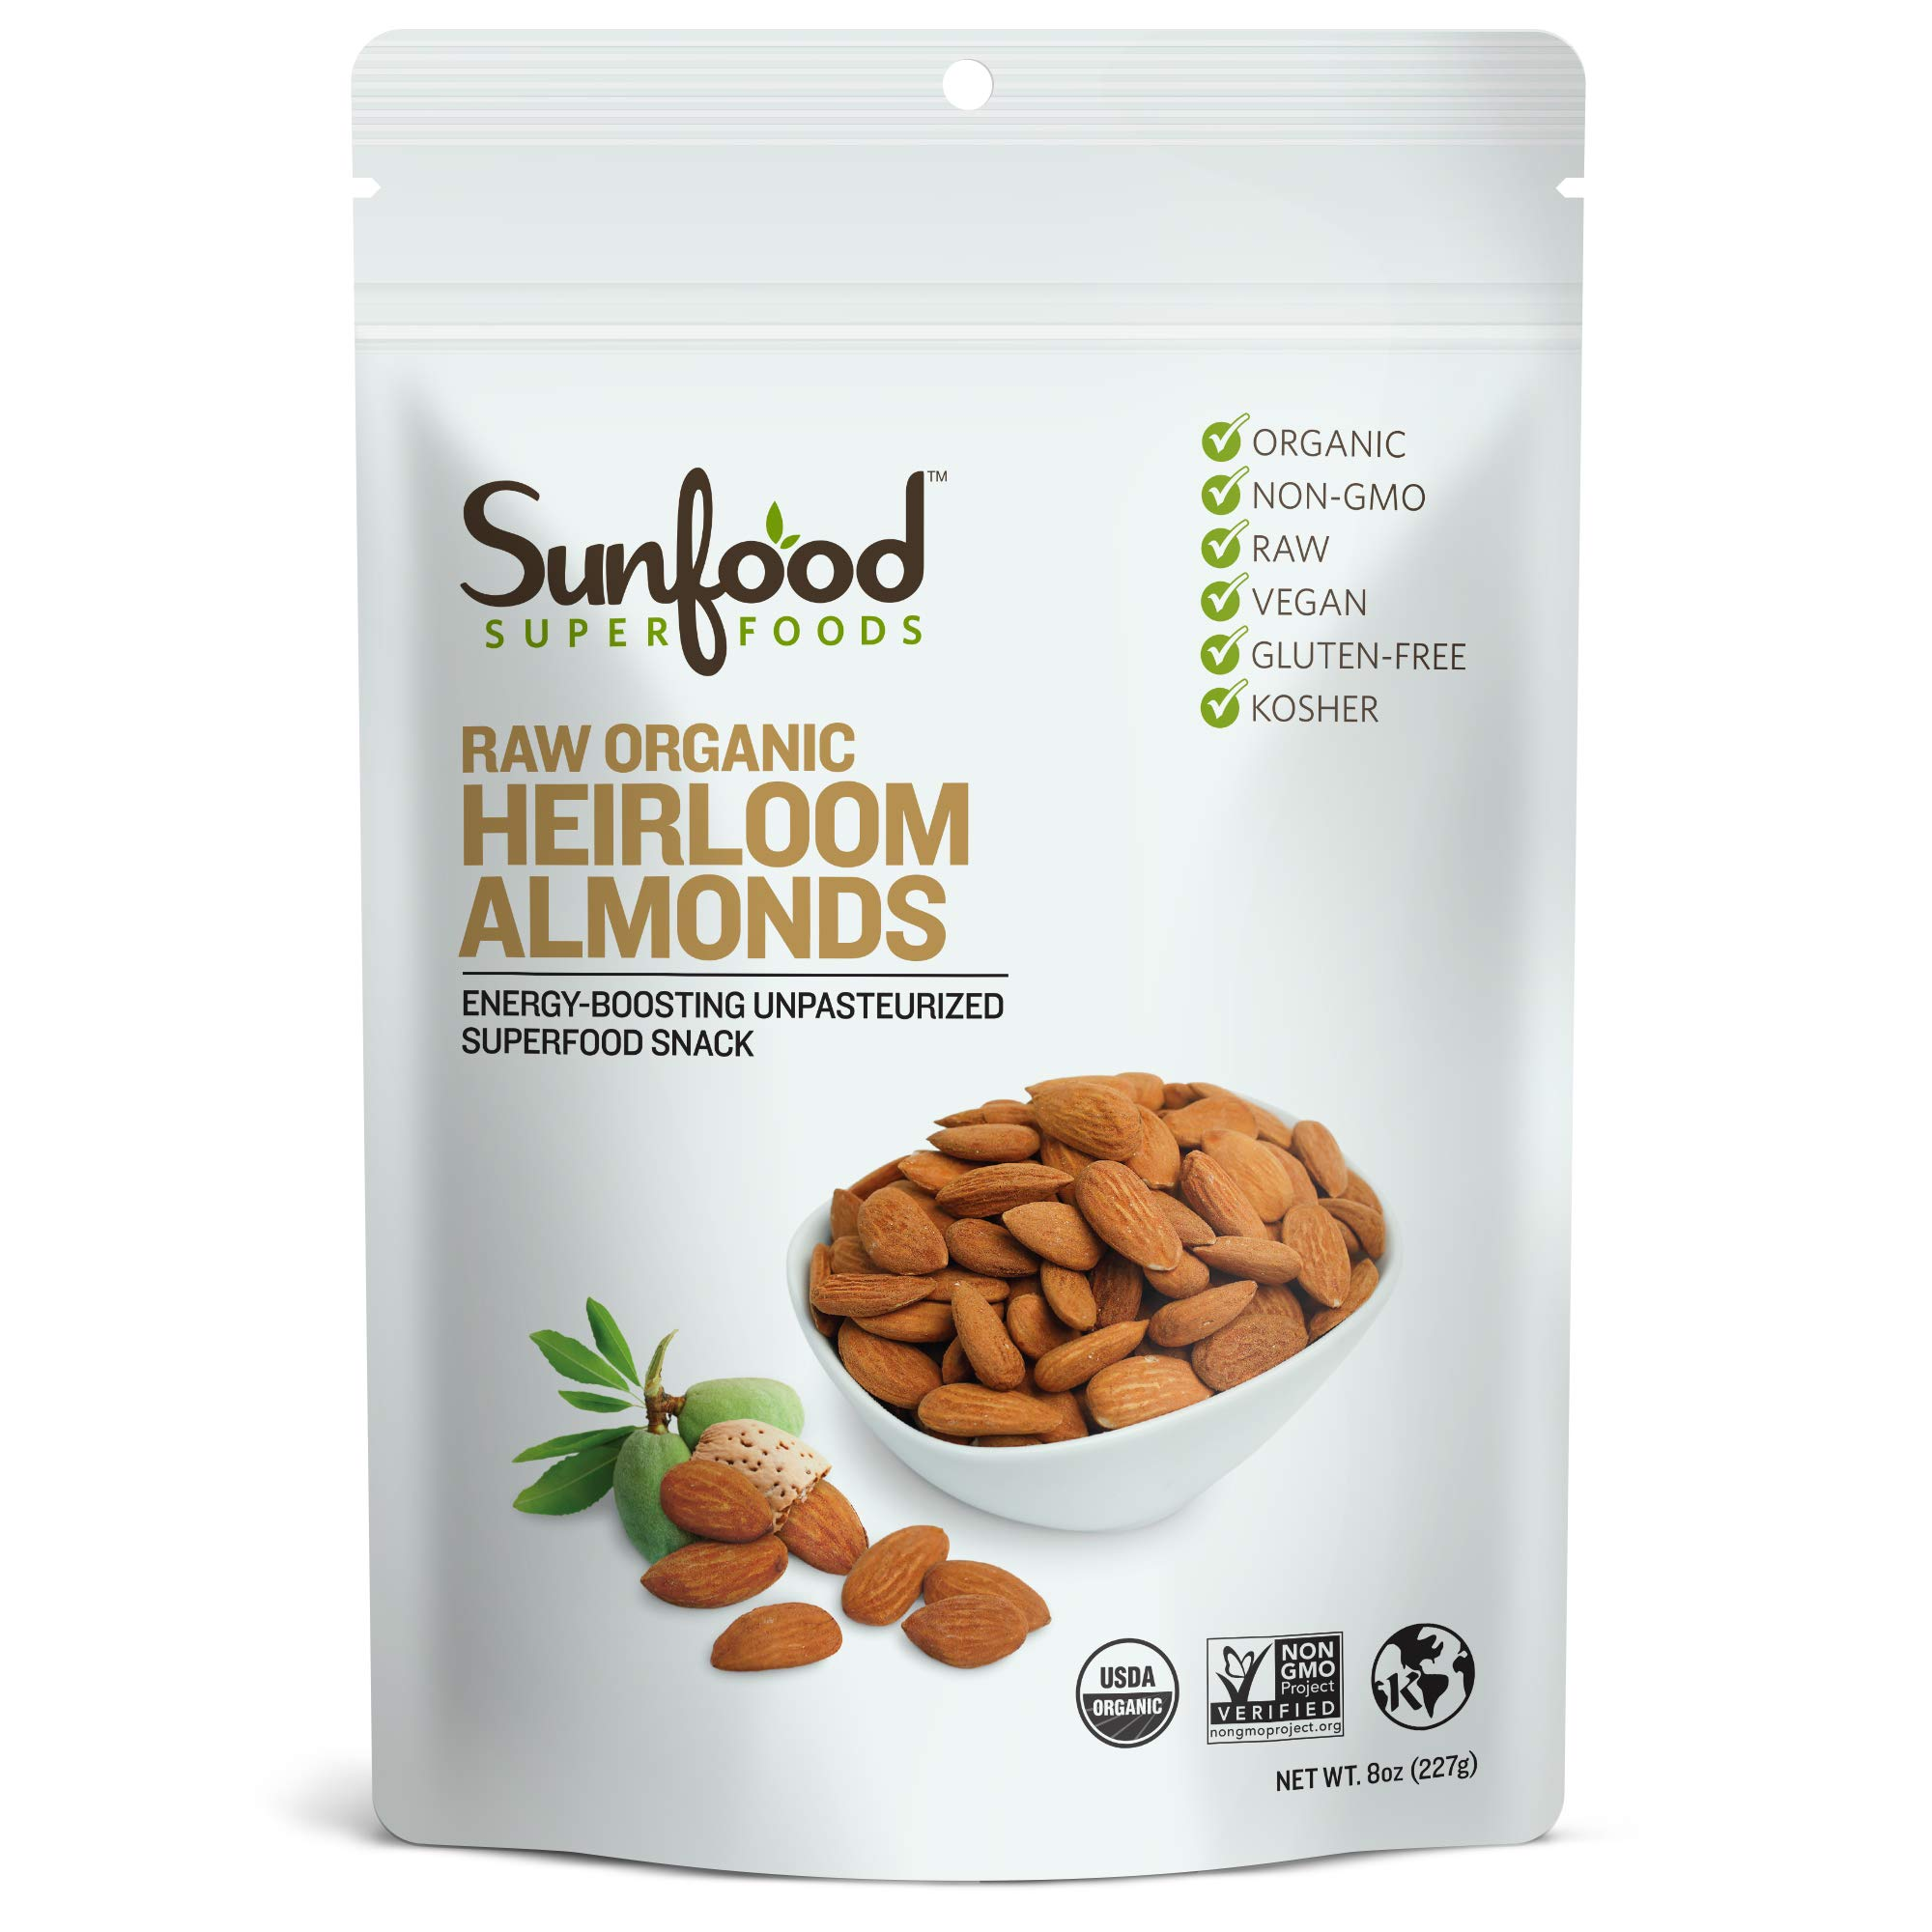 Sunfood Superfoods Heirloom Almonds - Raw, Shelled. Organic, Non-GMO. Never Treated with Heat for a Unique Natural Sweet Flavor. Unpasteurized. No Additives or Preservatives. 8 oz Bag